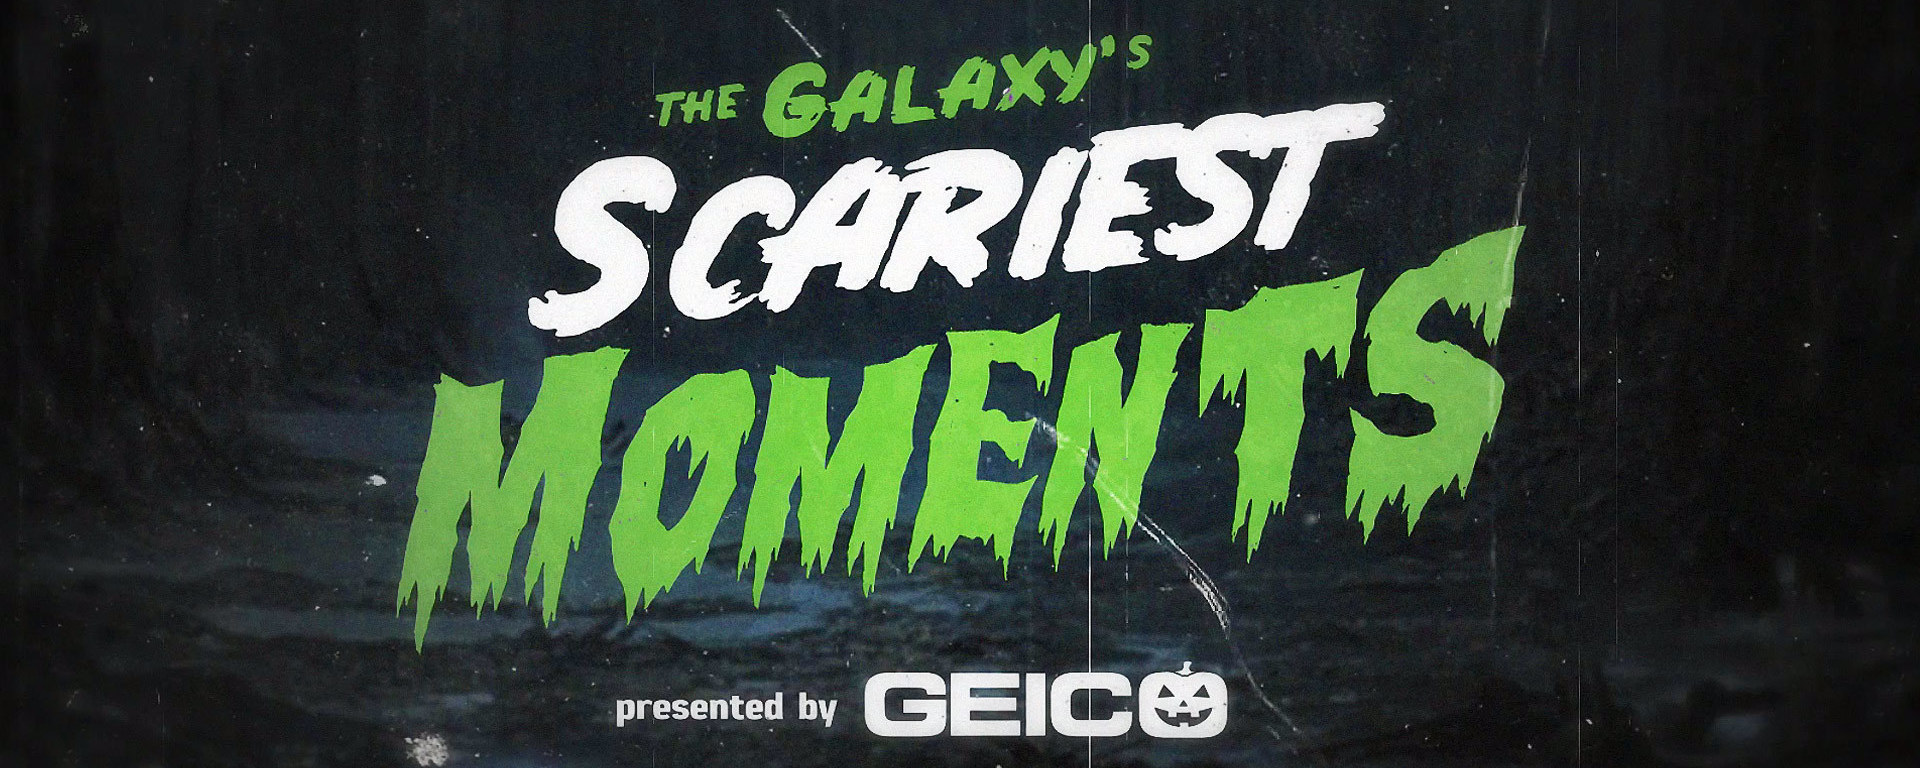 The Galaxy's Scariest Moments